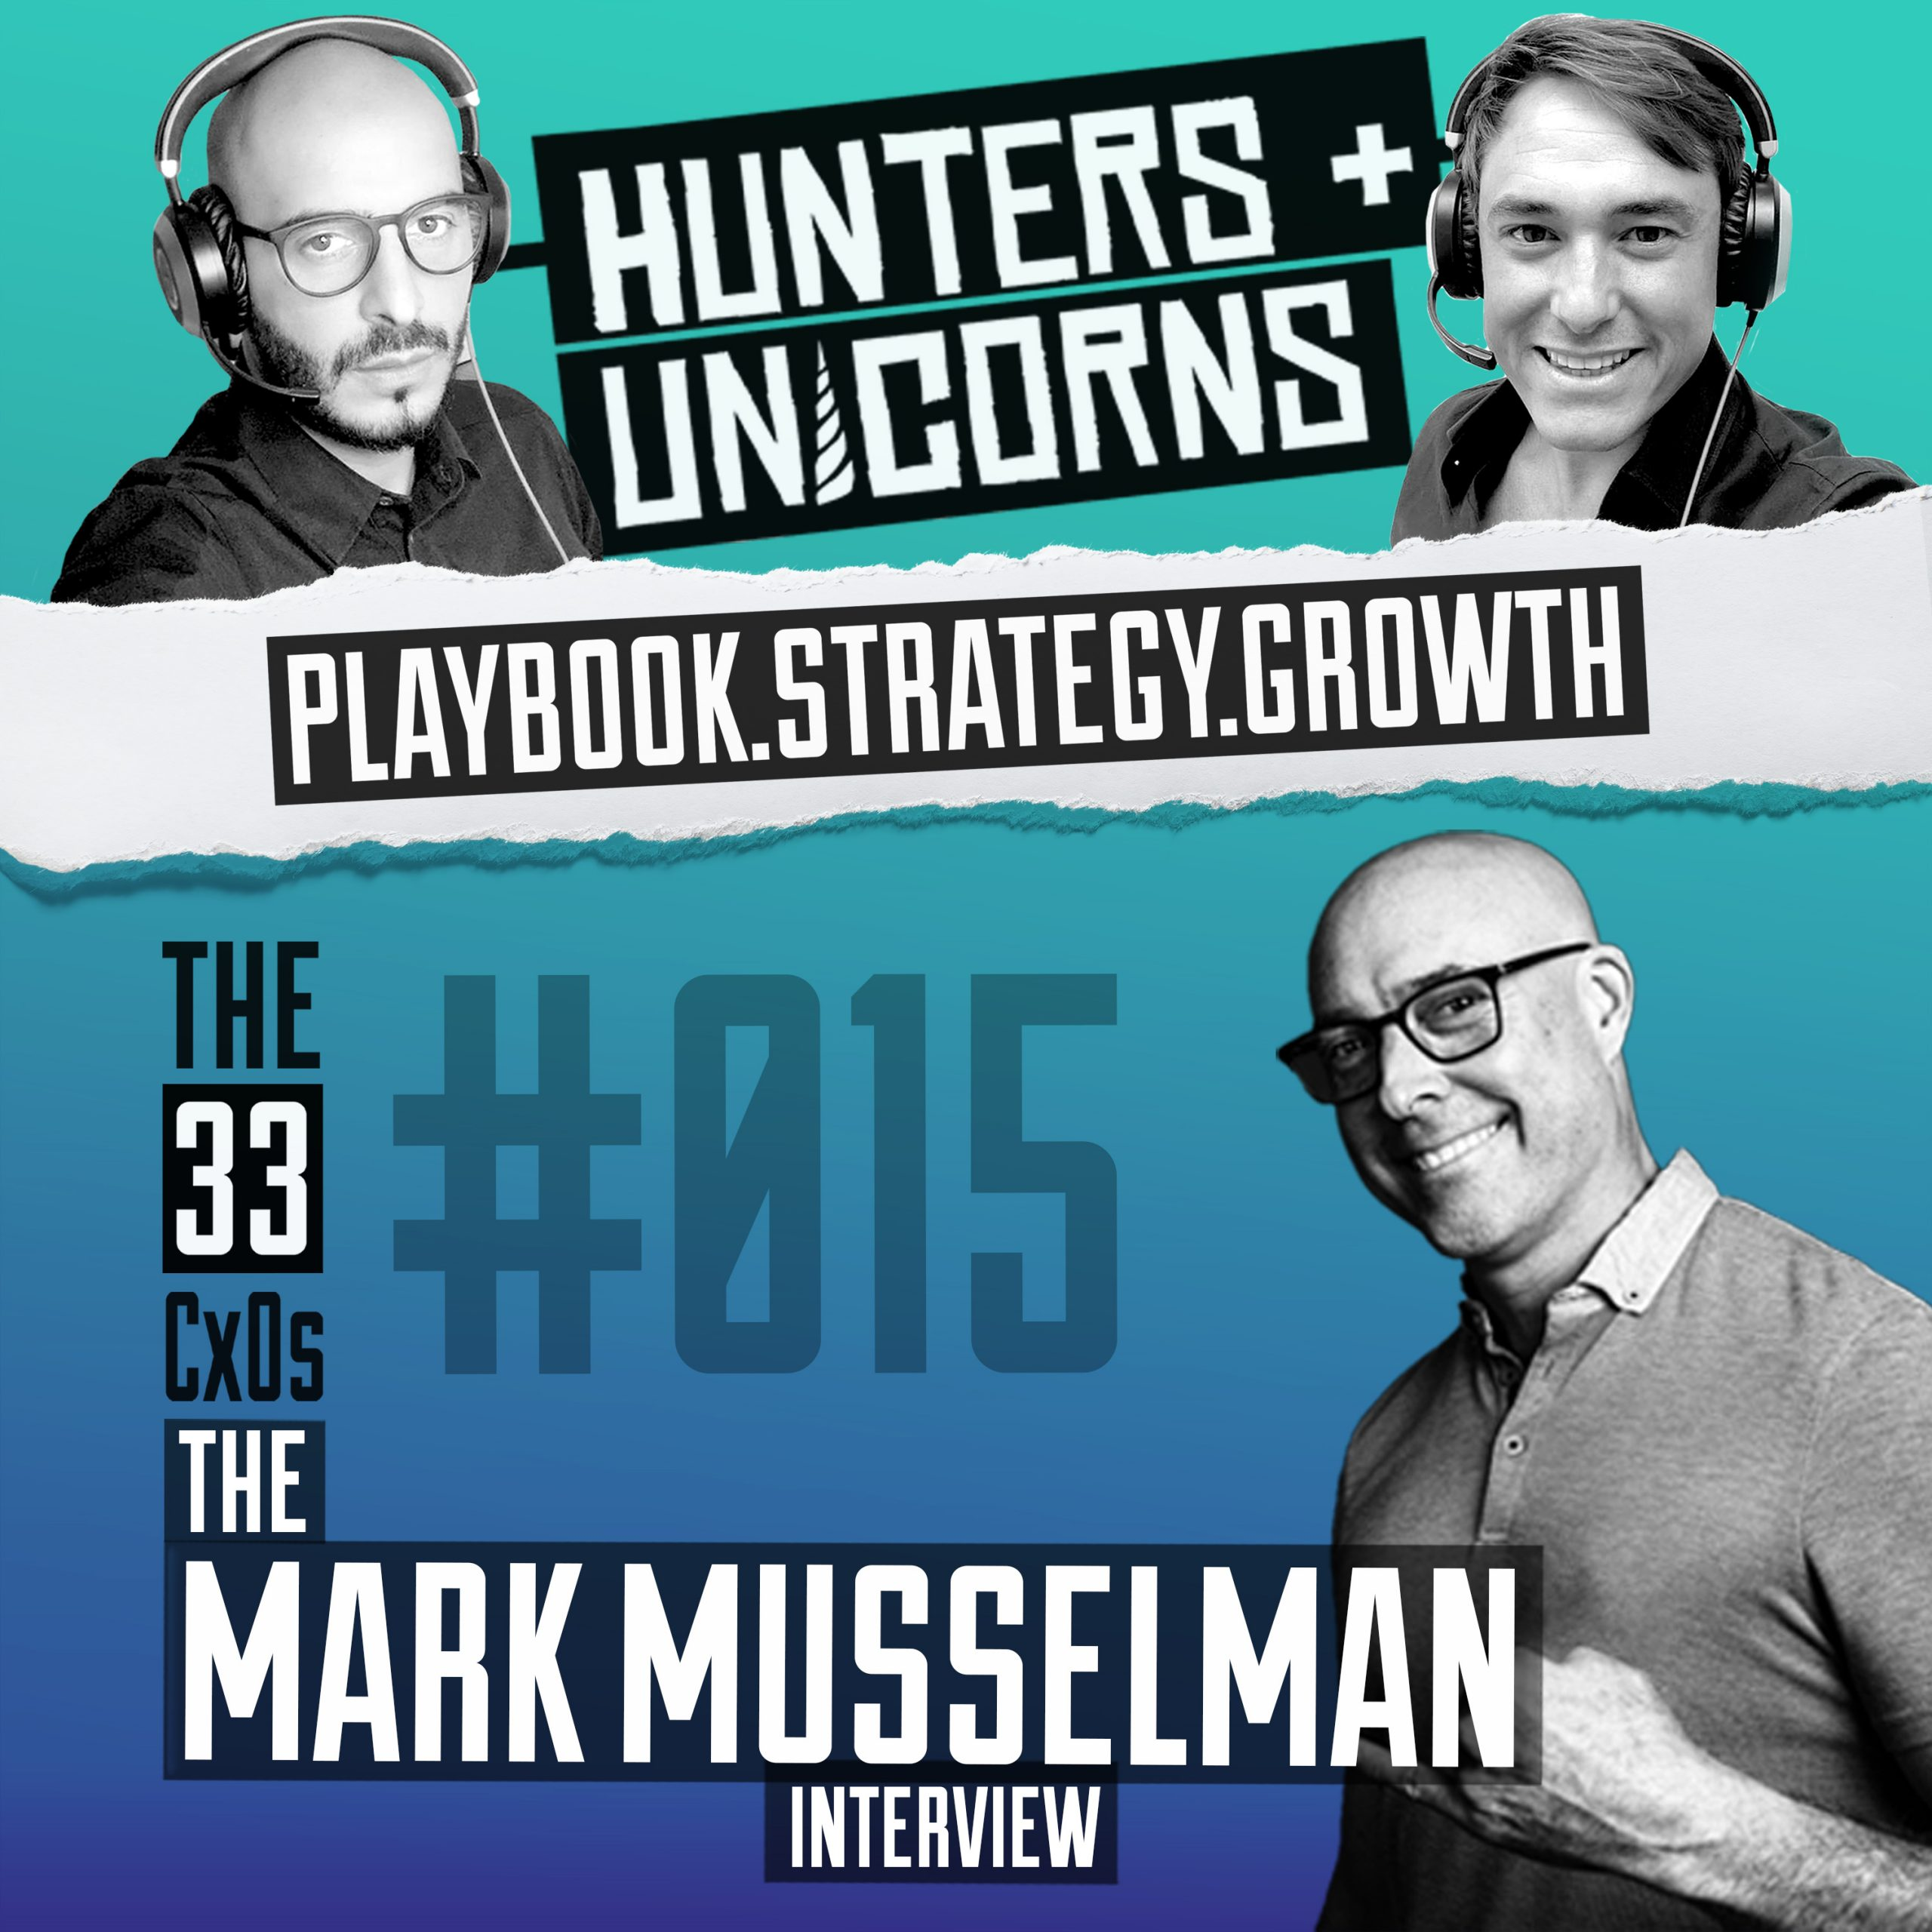 Mark Musselman the 33 CxOs by Hunters and Unicorns